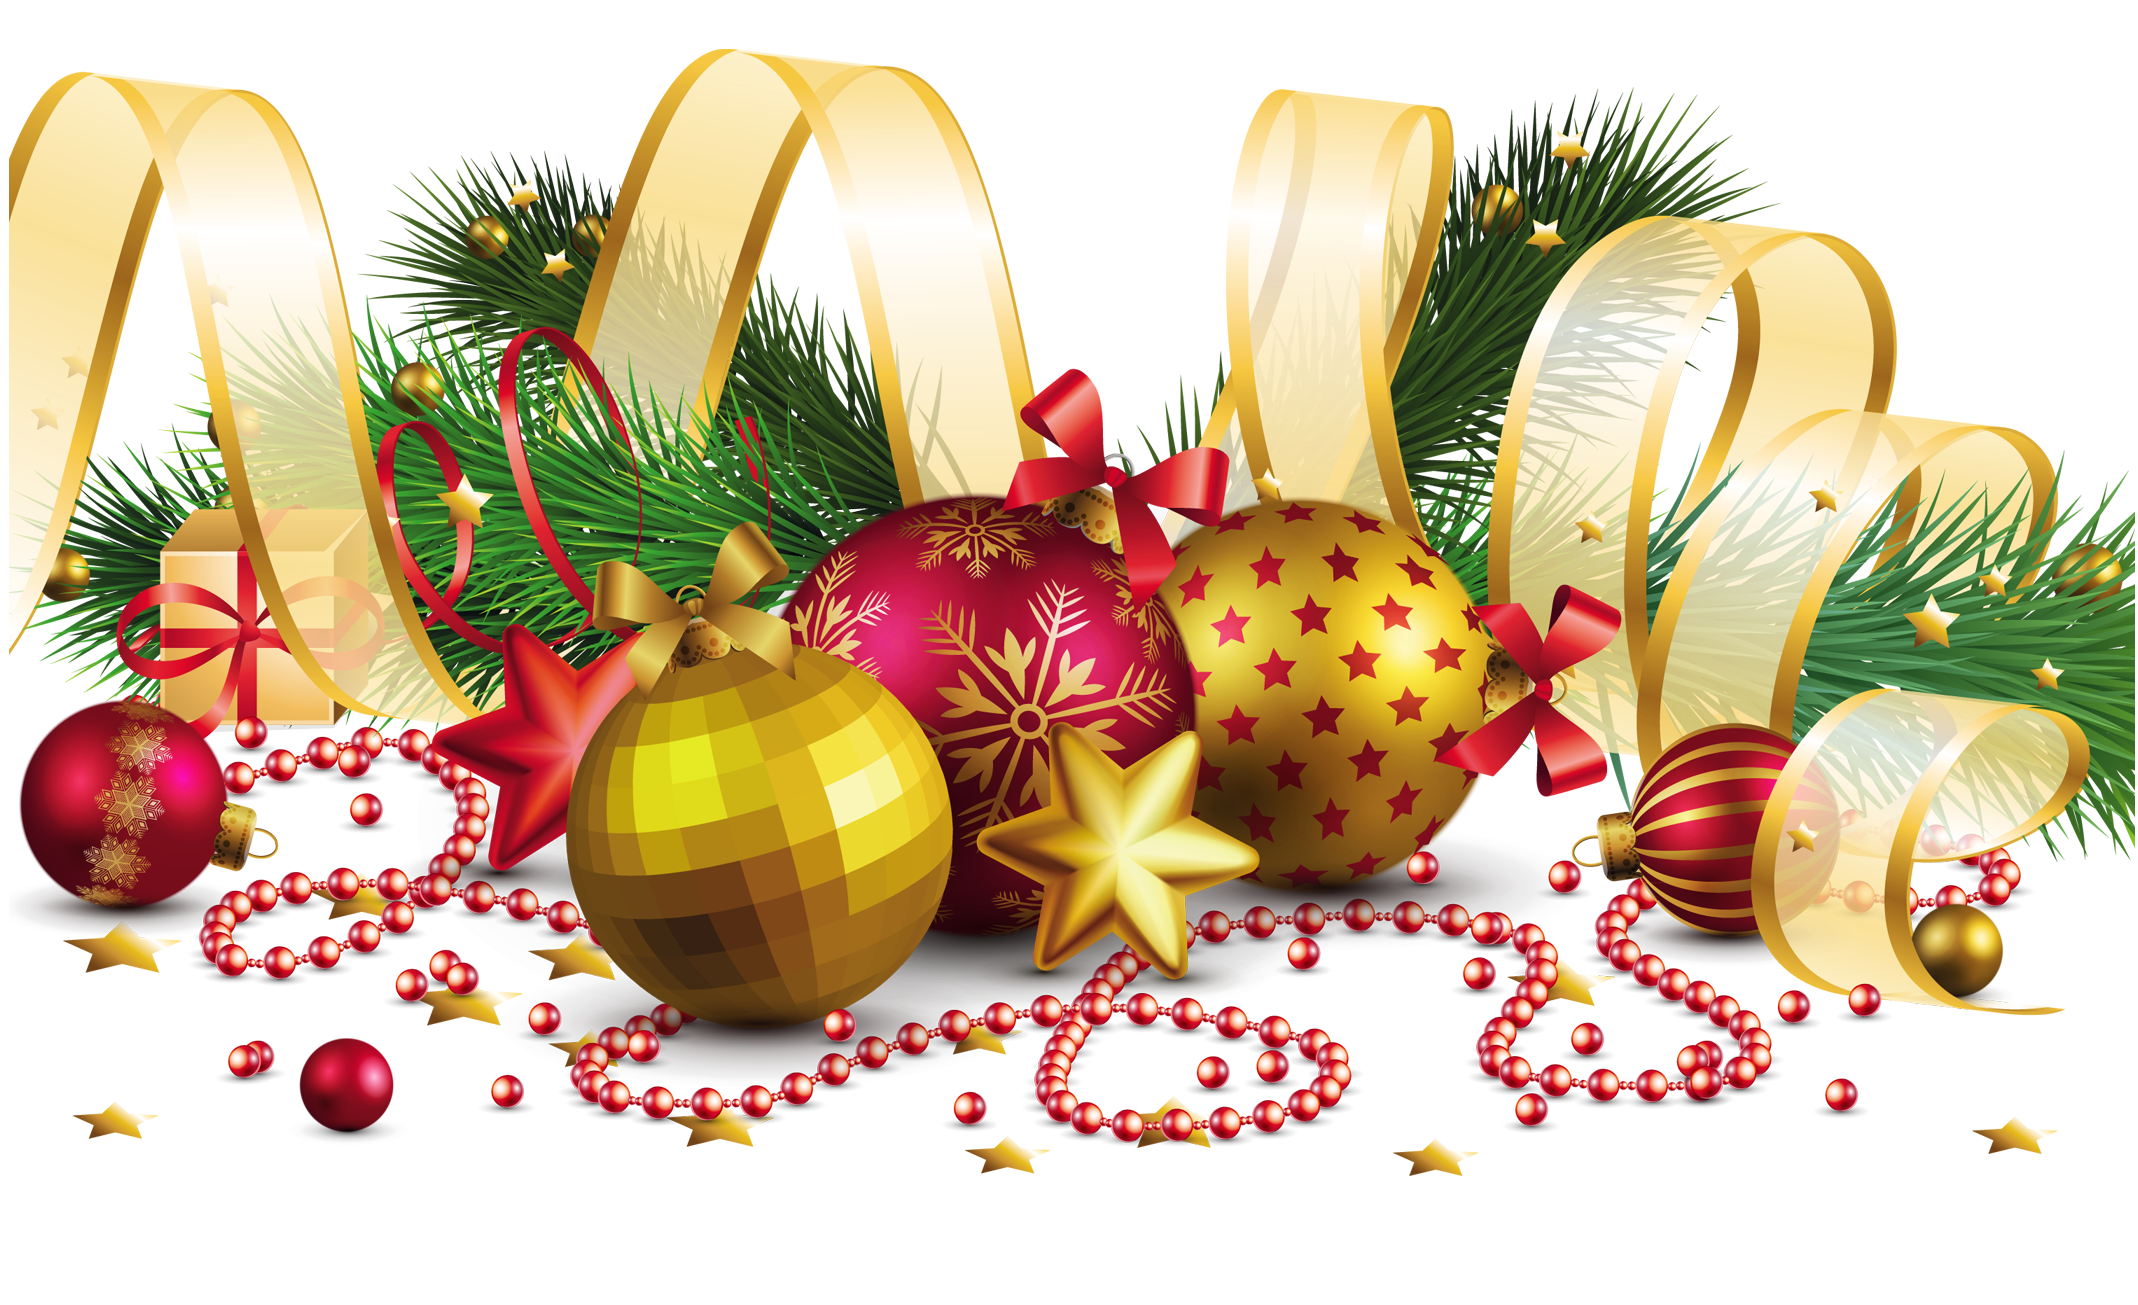 Christmas png images. Transparent decoration with gold